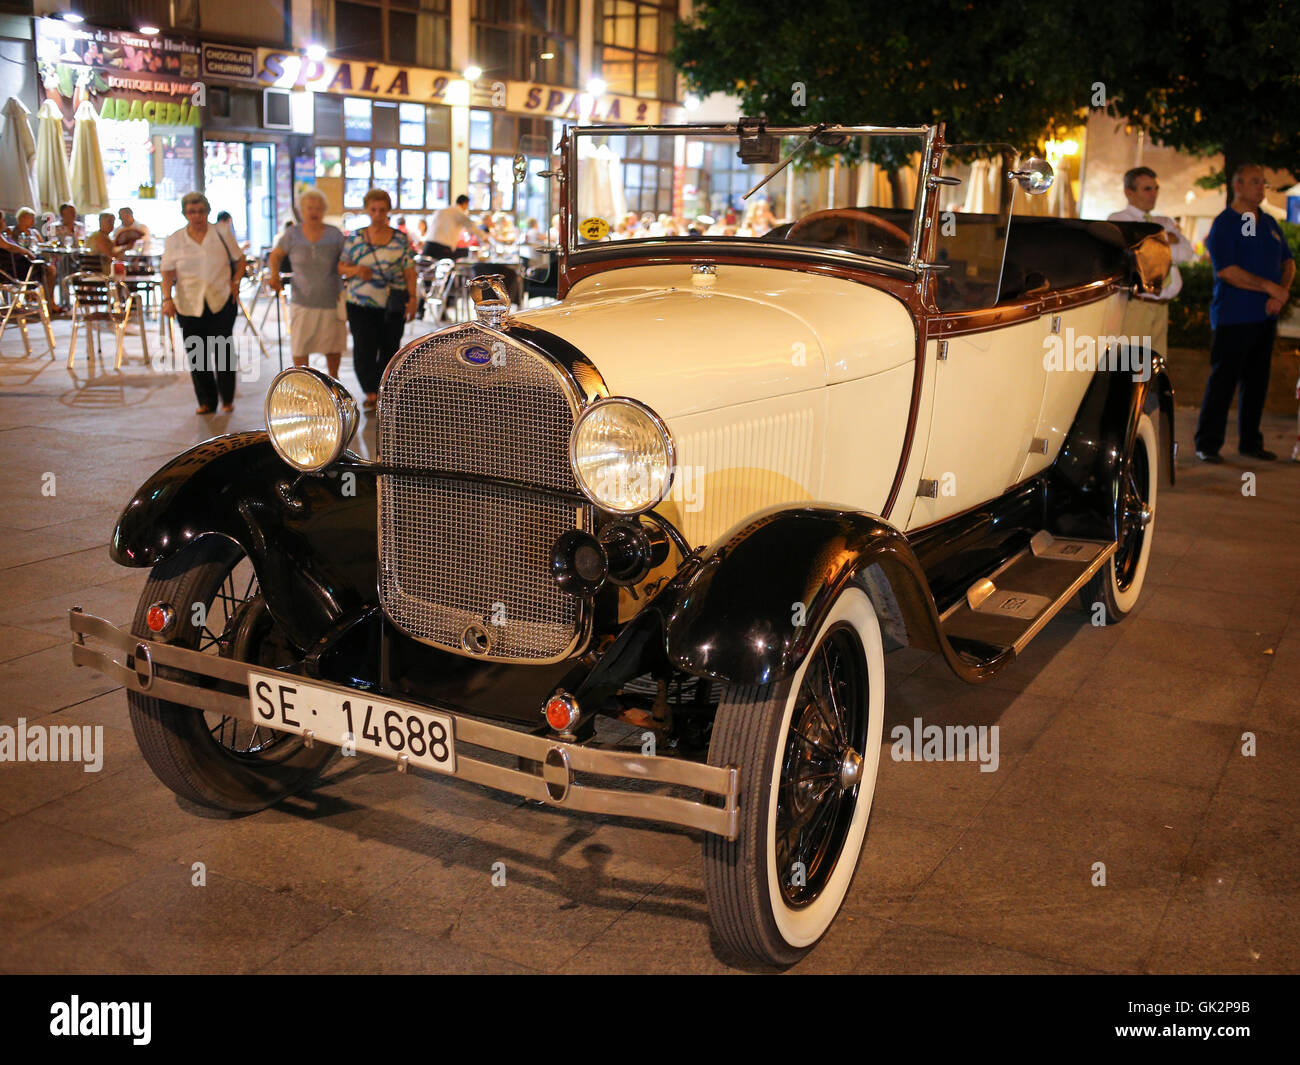 Classic Ford under Las Setas, Seville - Stock Image